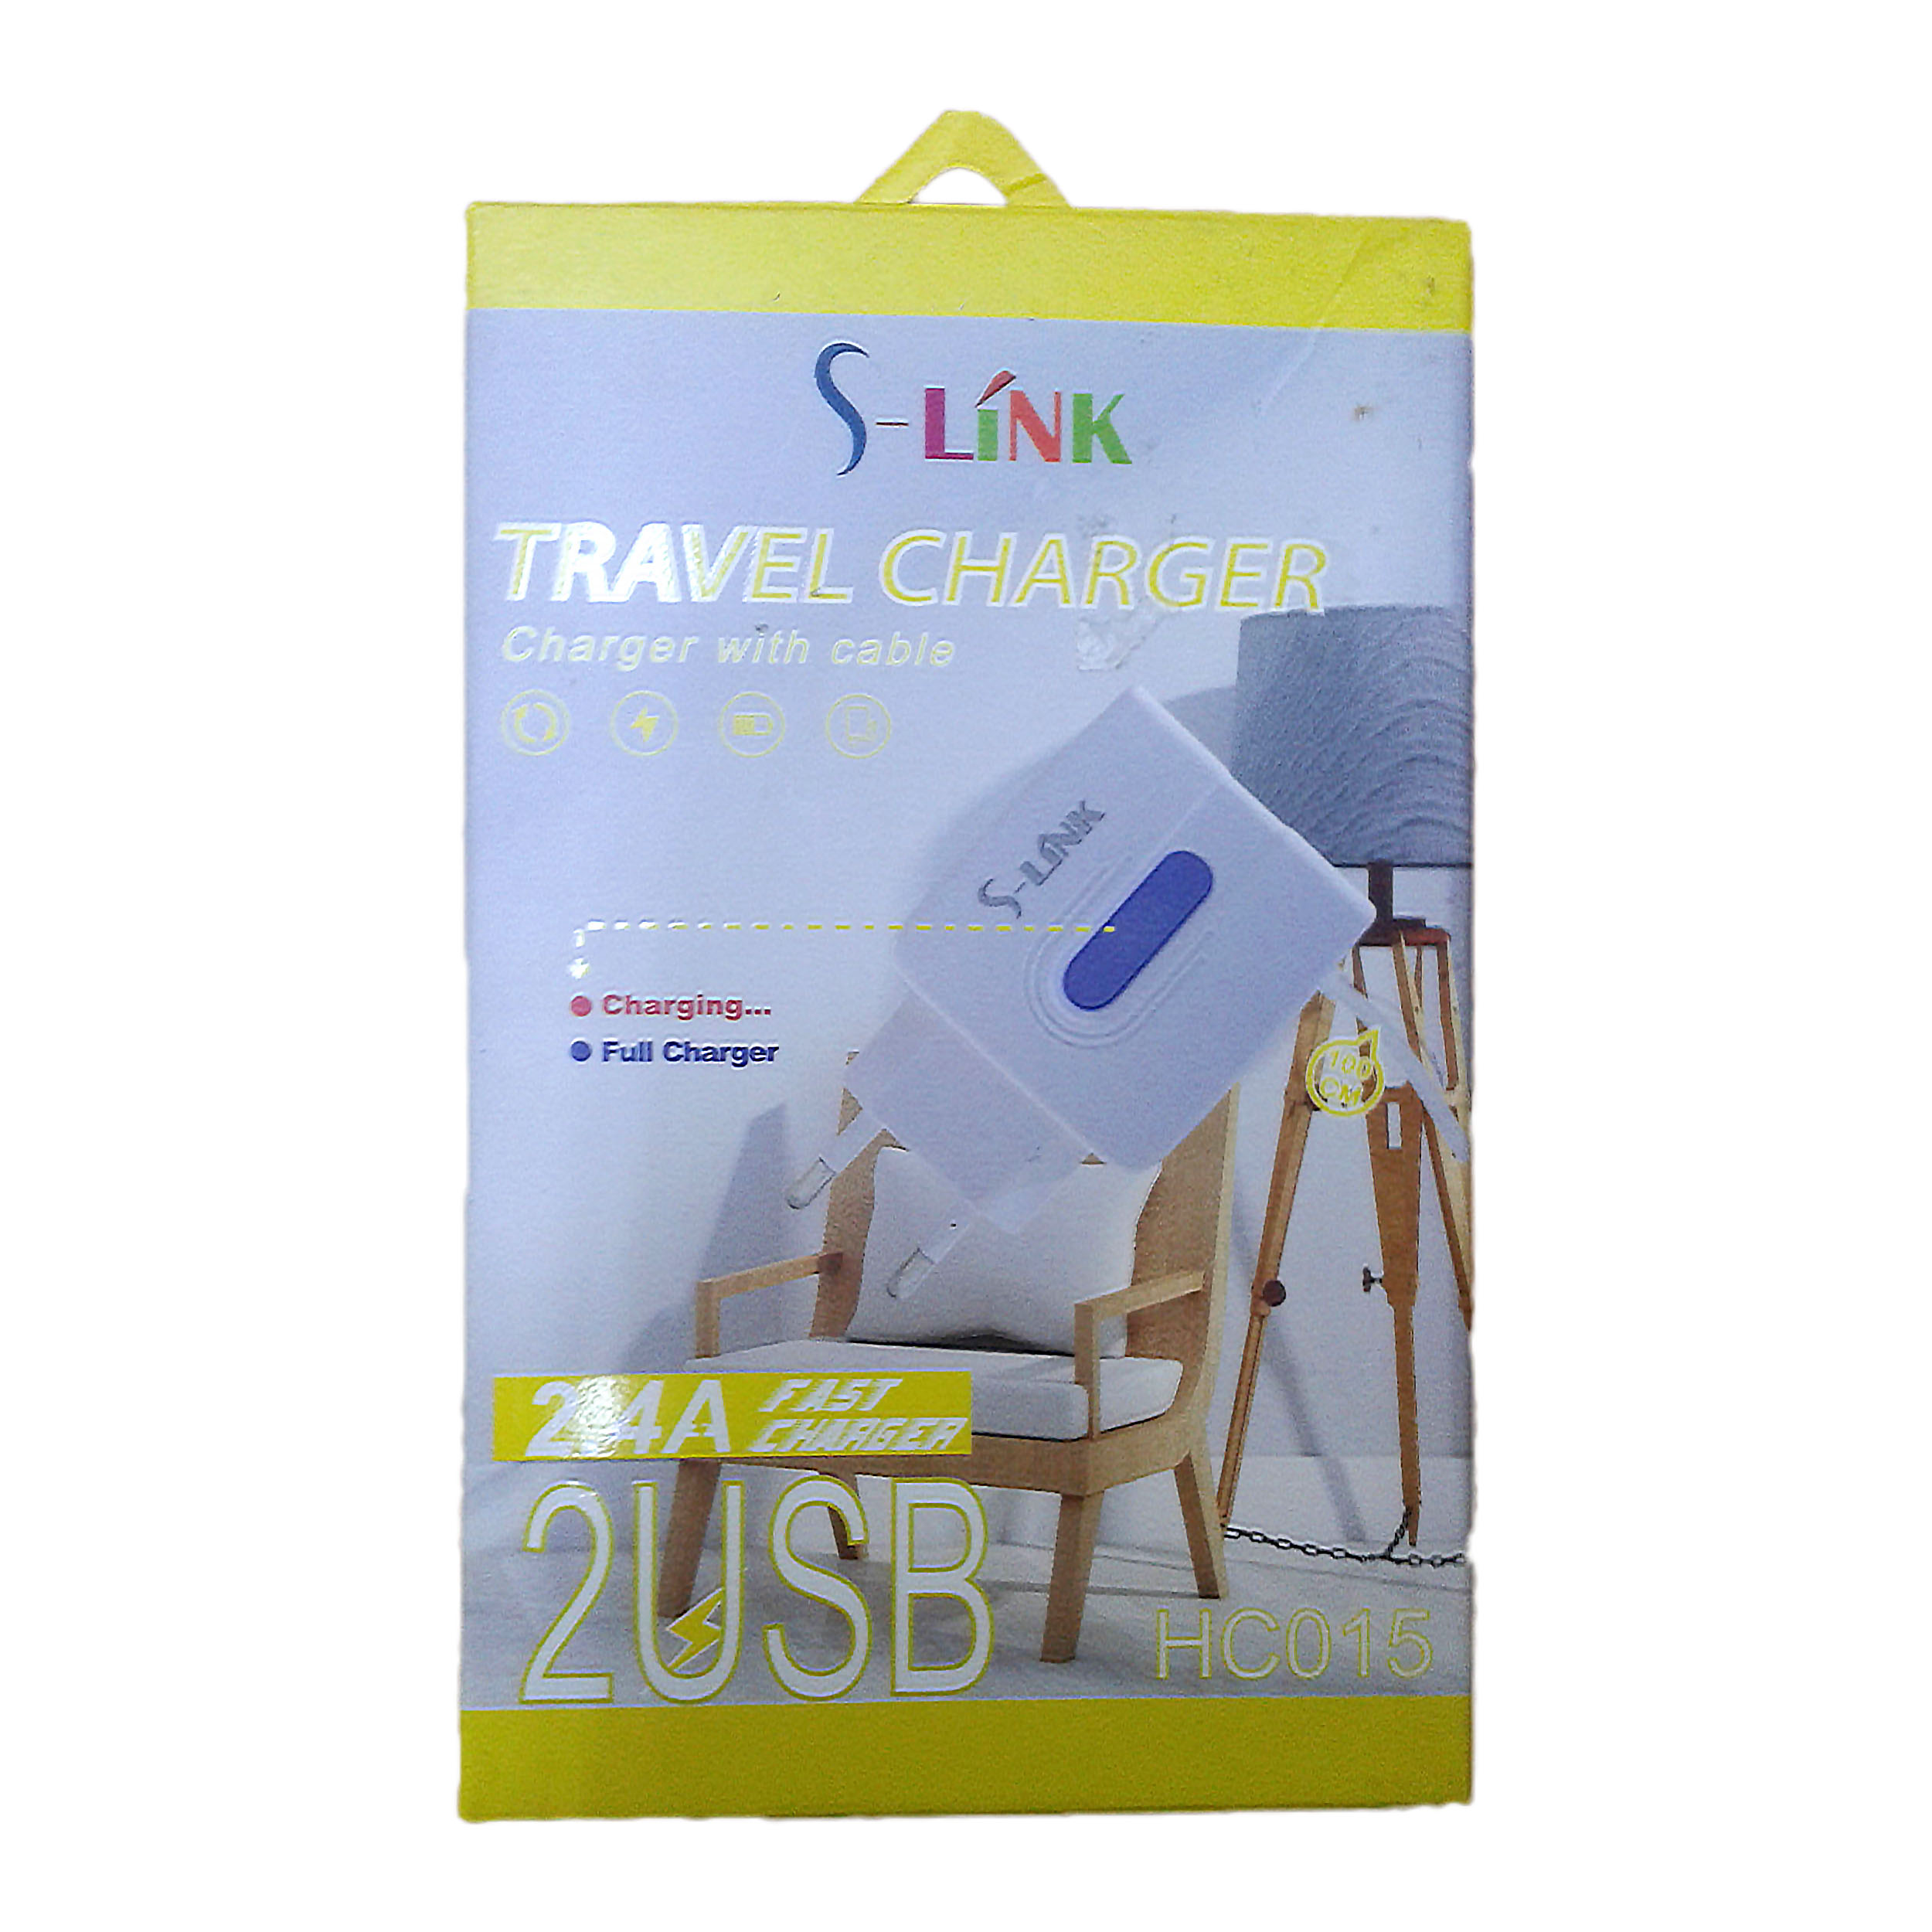 CHARGER DUAL USB FOR MOBILE&TAB I PHONE - S-LINK - HC 015   شاحن مخرجين 2.4 امبير مع كبل ايفون ,Smartphones & Tab Chargers